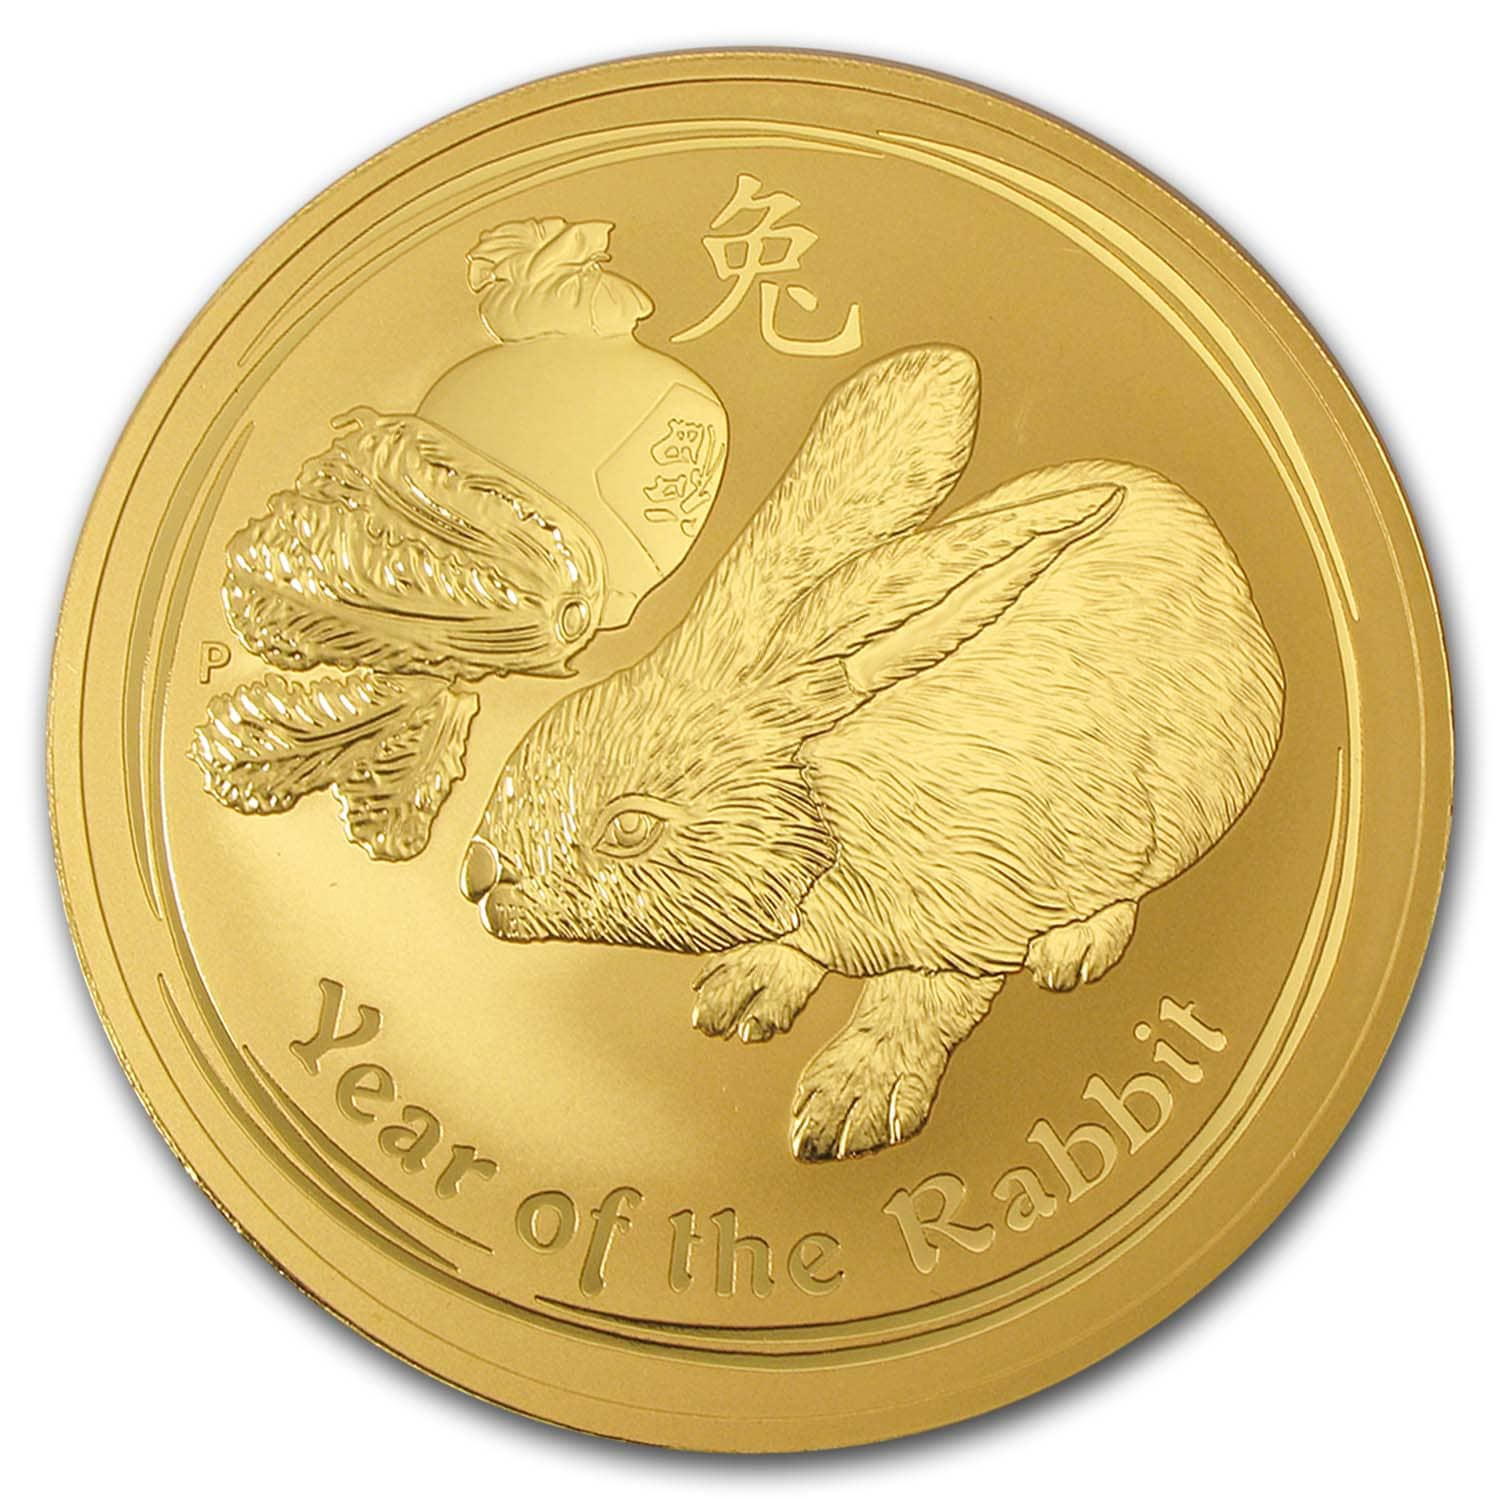 2011 1 Kilo (32.15 oz) Gold Lunar Year of the Rabbit (Series II)